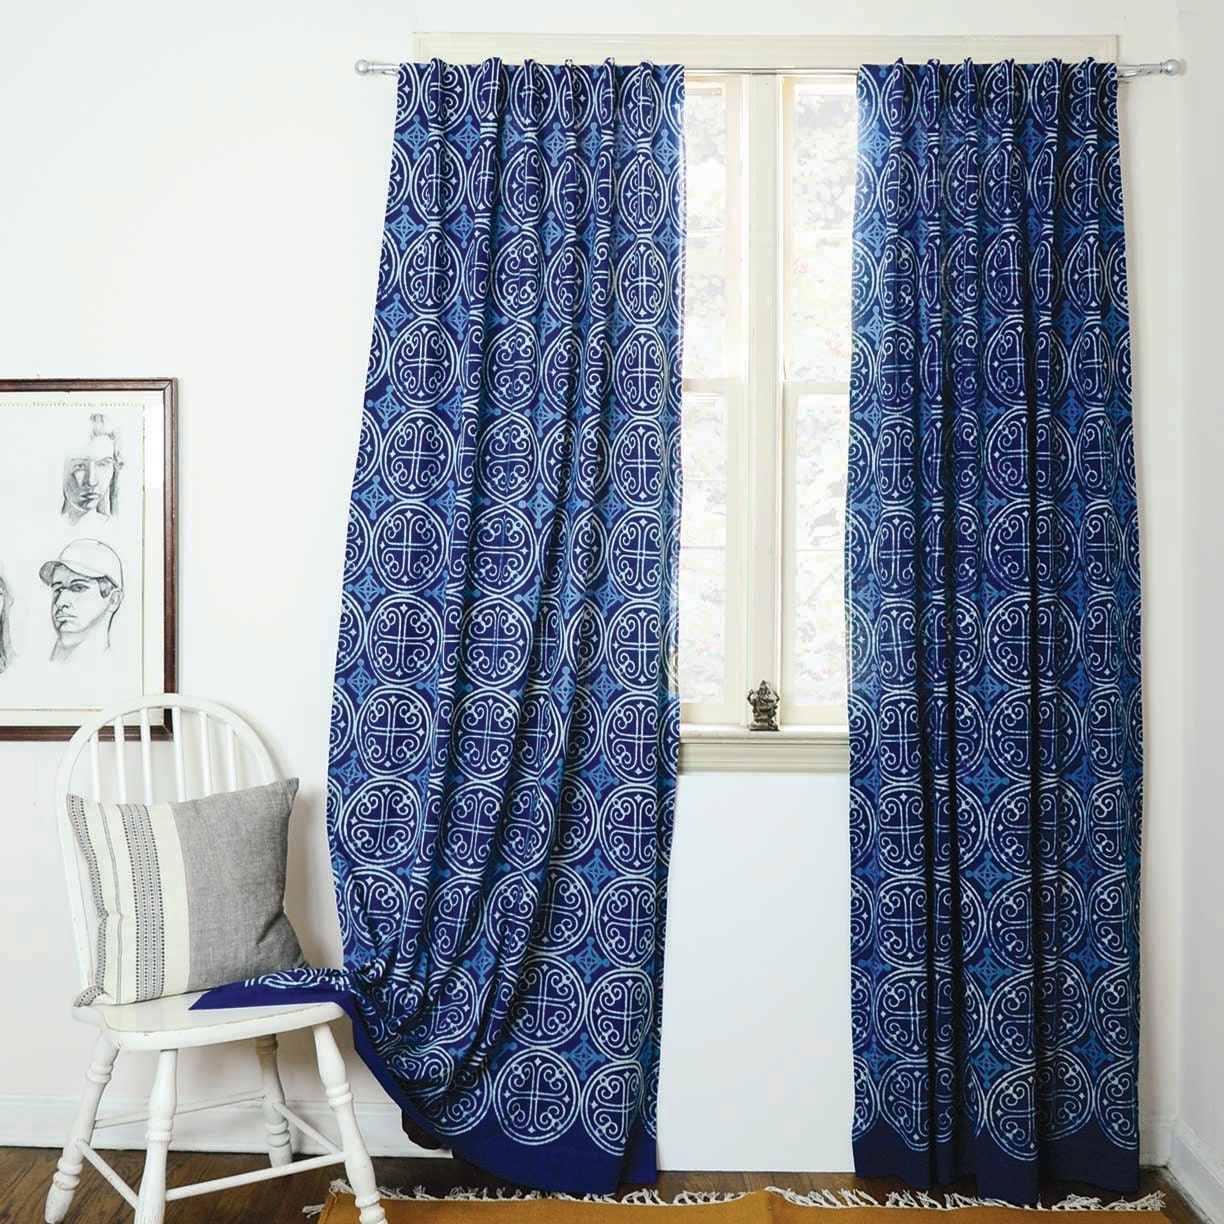 up floral curtain awesome valance and u uncategorized tfile navy curtains blue new ideas trend concept tie for